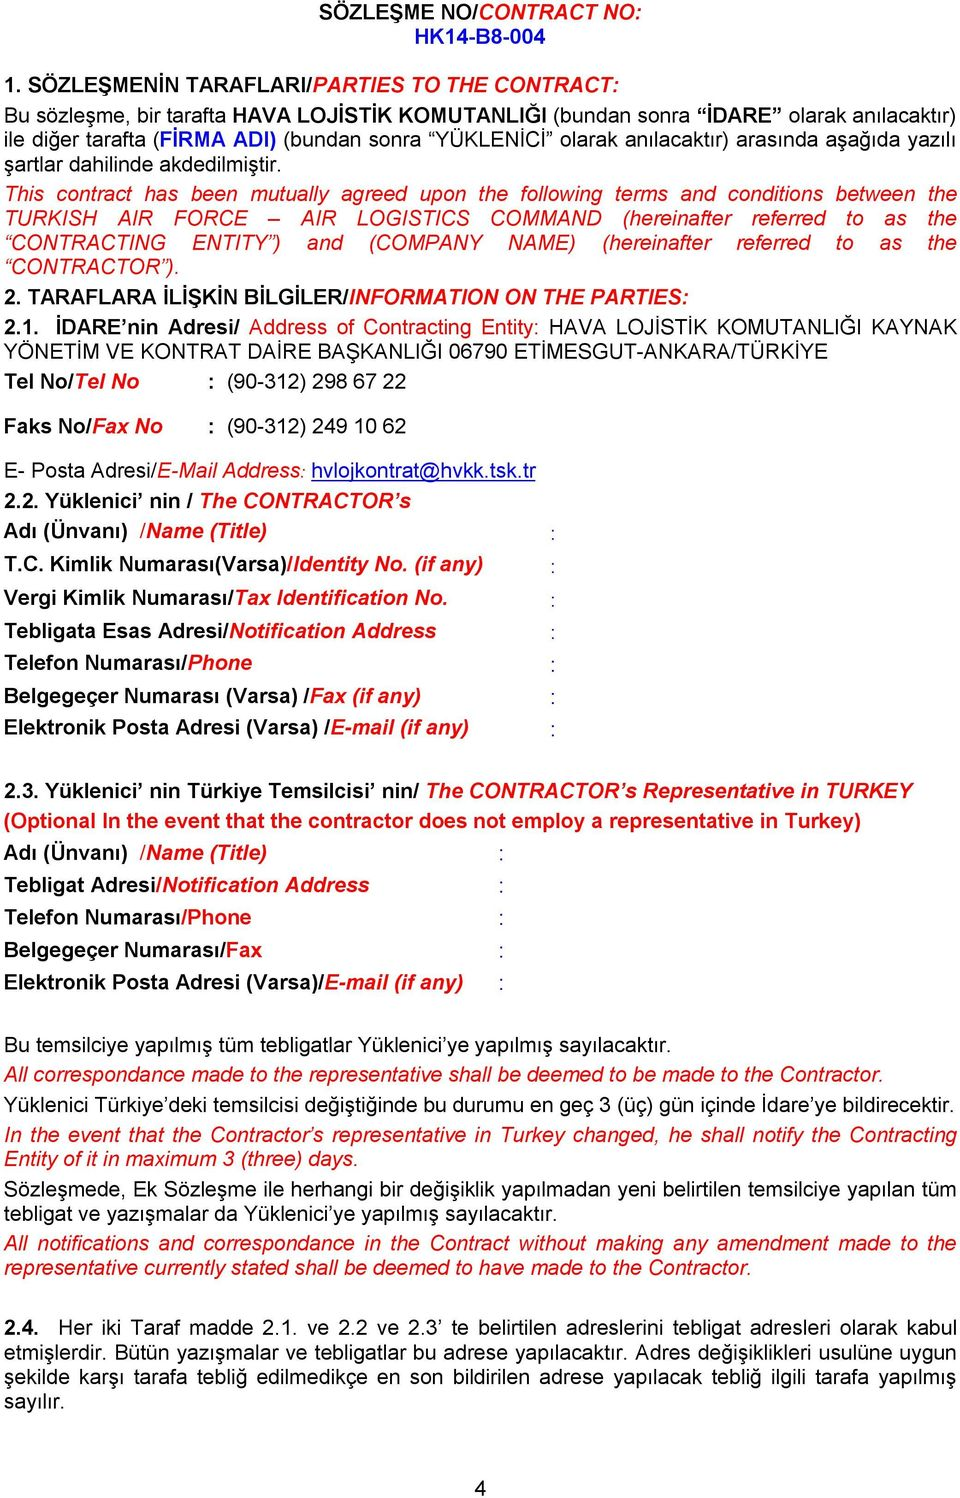 This contract has been mutually agreed upon the following terms and conditions between the TURKISH AIR FORCE AIR LOGISTICS COMMAND (hereinafter referred to as the CONTRACTING ENTITY ) and (COMPANY